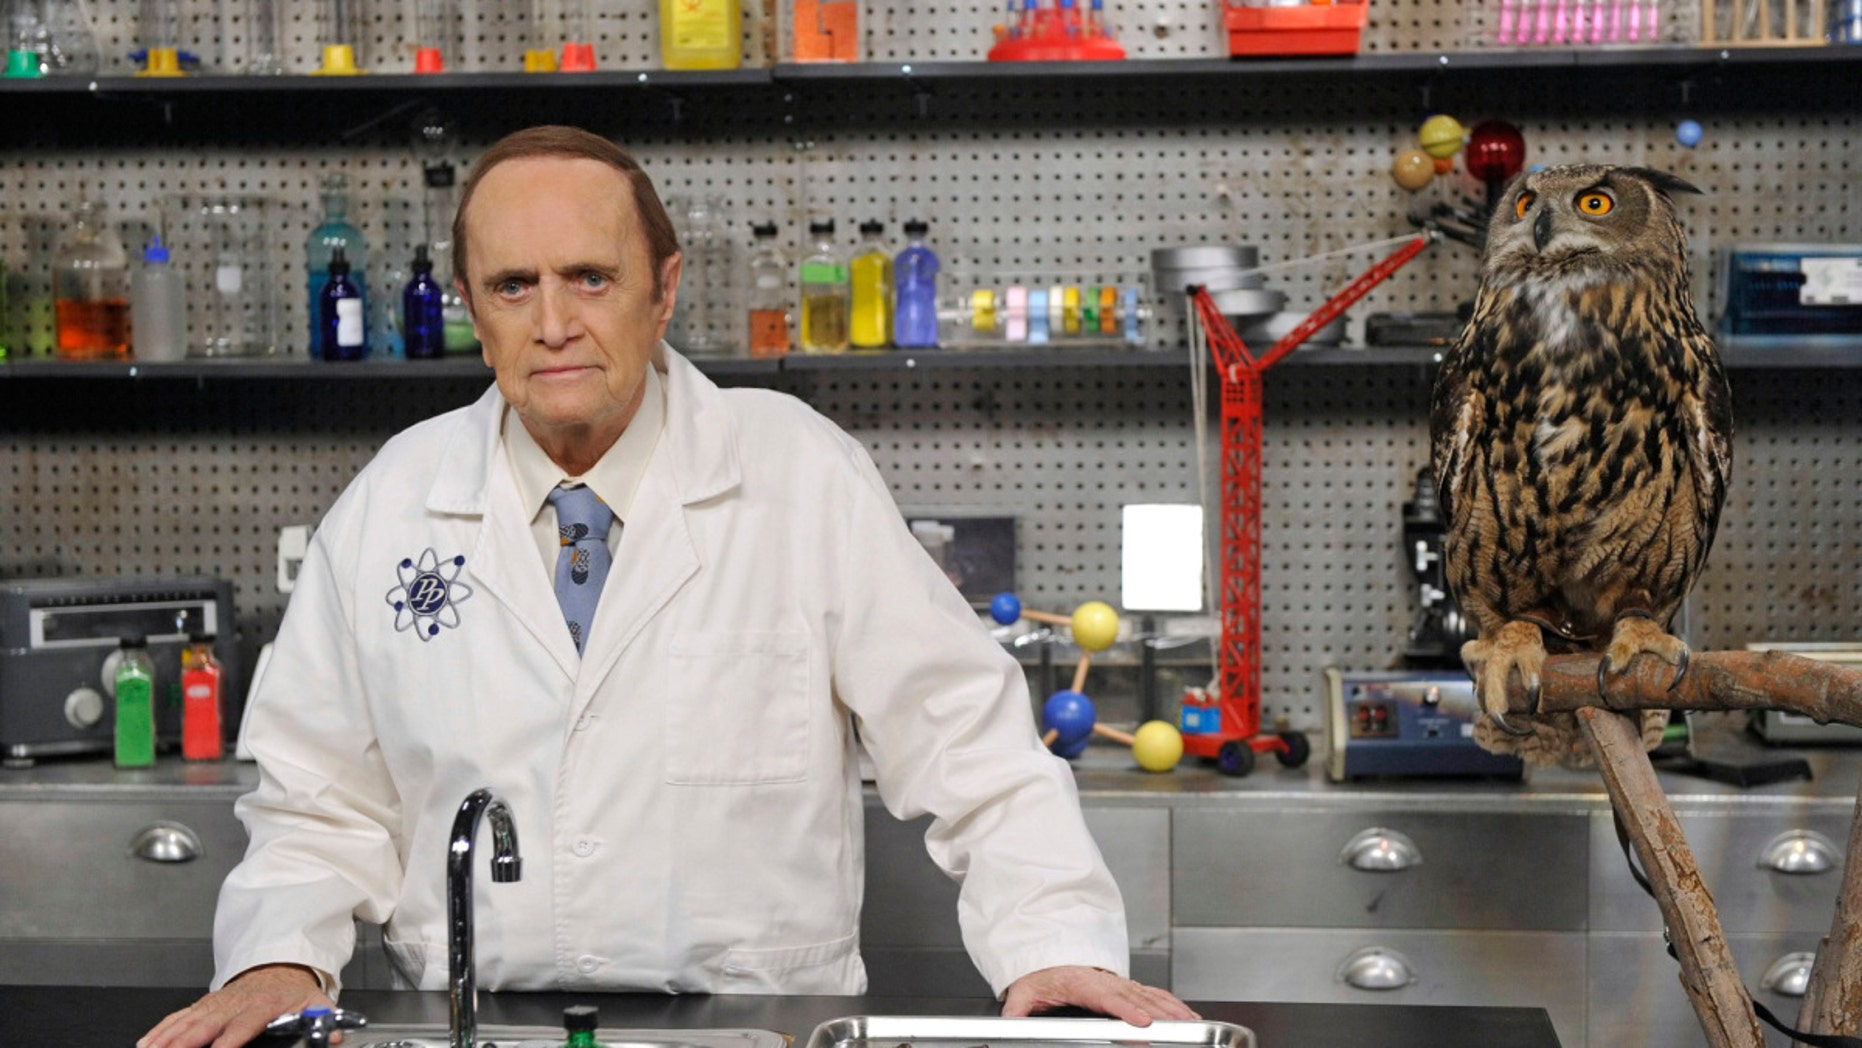 """The Proton Transmogrification"" -- Professor Proton helps Sheldon cope with grief, on THE BIG BANG THEORY, Thursday, May 1 (8:00-8:31 PM, ET/PT) on the CBS Television Network. Bob Newhart (pictured) returns as Professor Proton. 